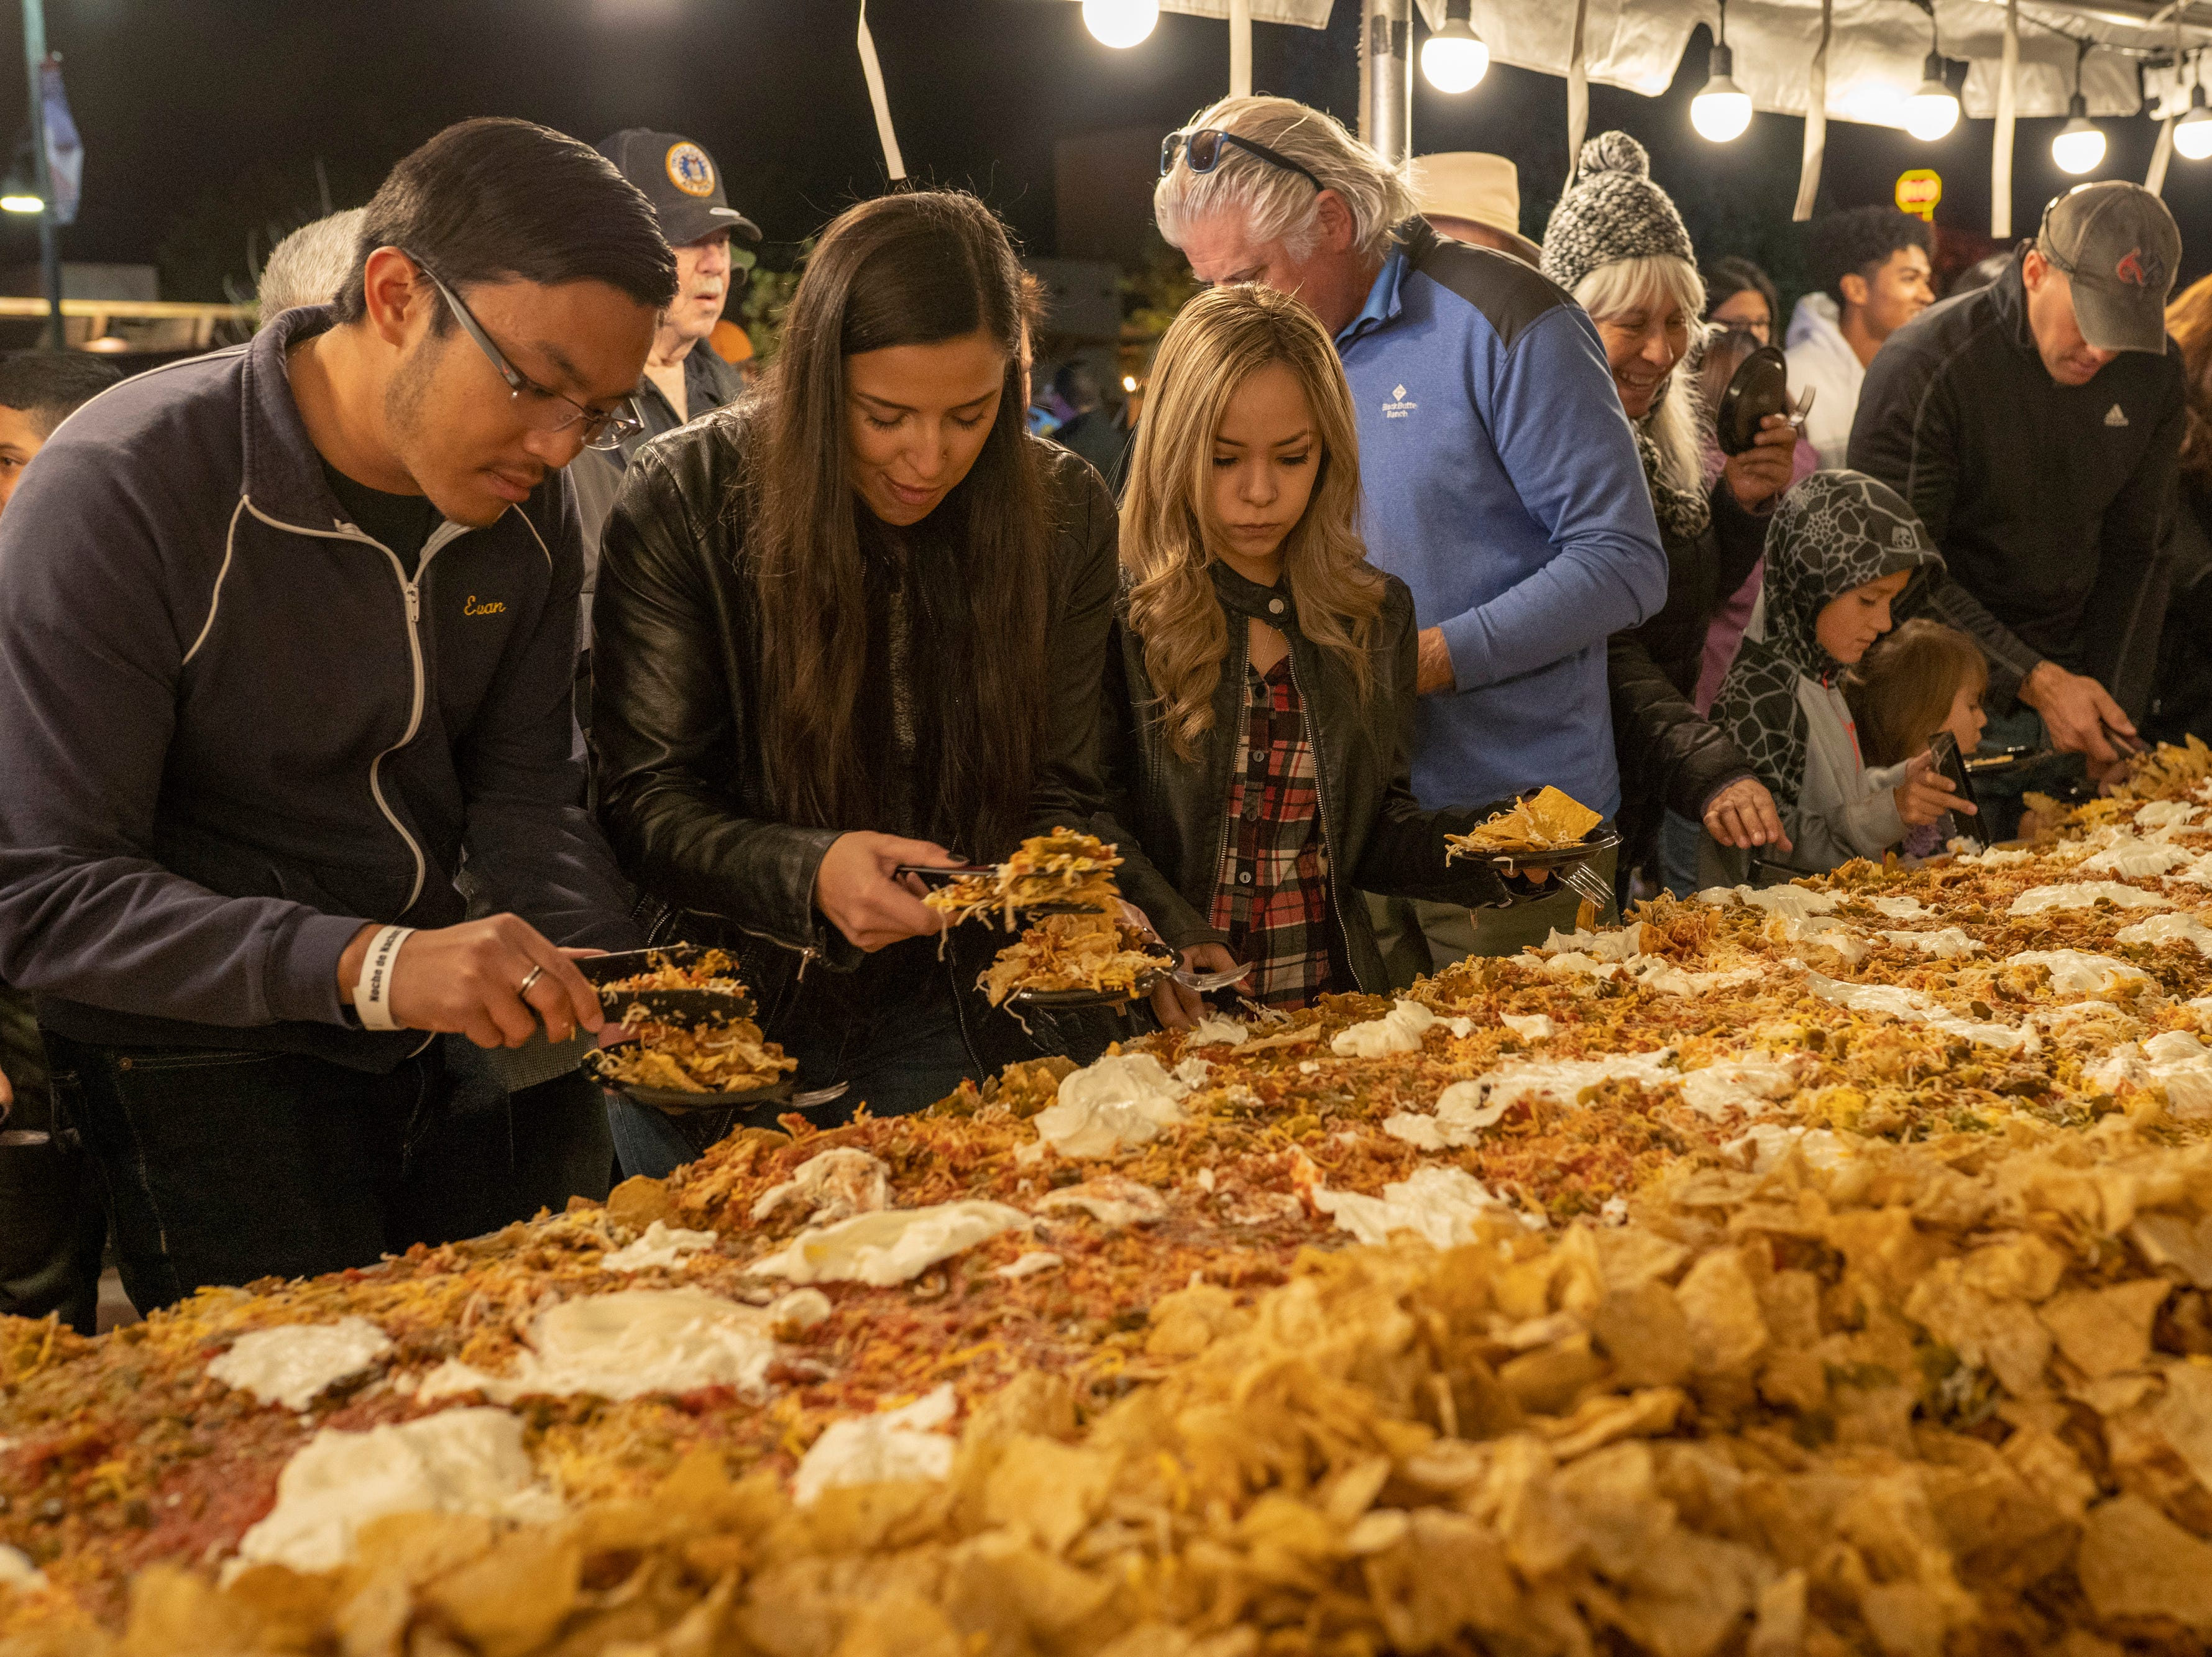 Attendees dig into the gigantic platter of nachos at Noche de Nachos. Las Cruces unofficially set the record for world's largest serving of nachos Saturday, Nov. 10, 2018, in downtown Las Cruces.